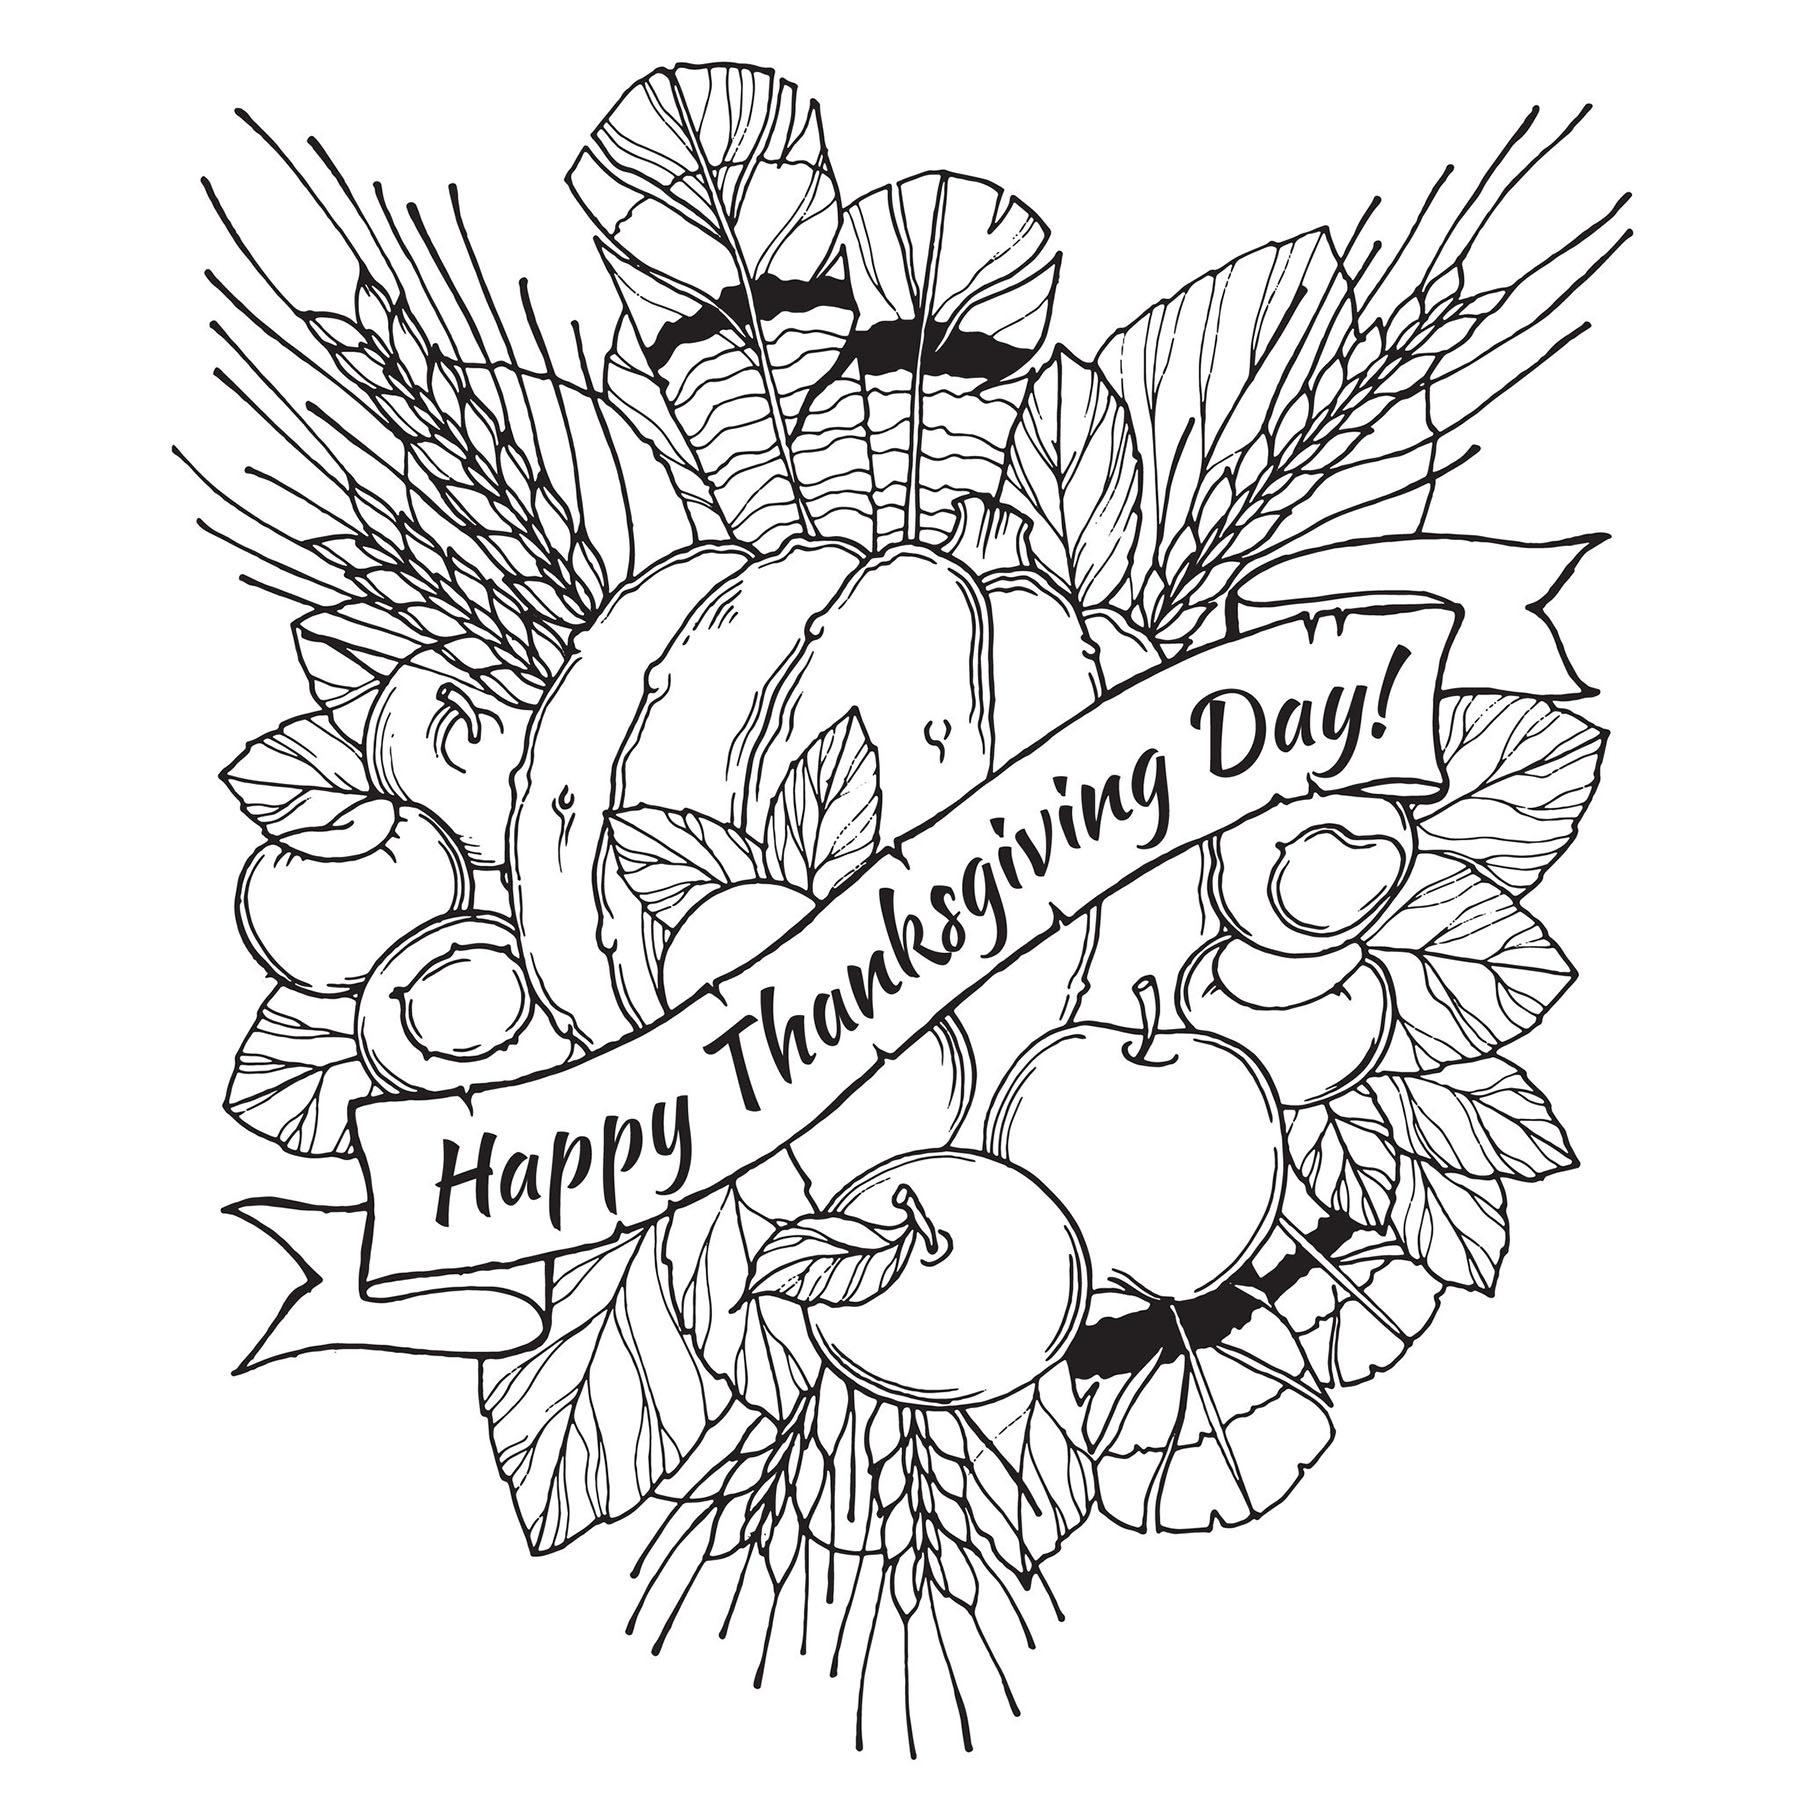 Funny Turkey Coloring Page - Coloring Home | 1800x1800